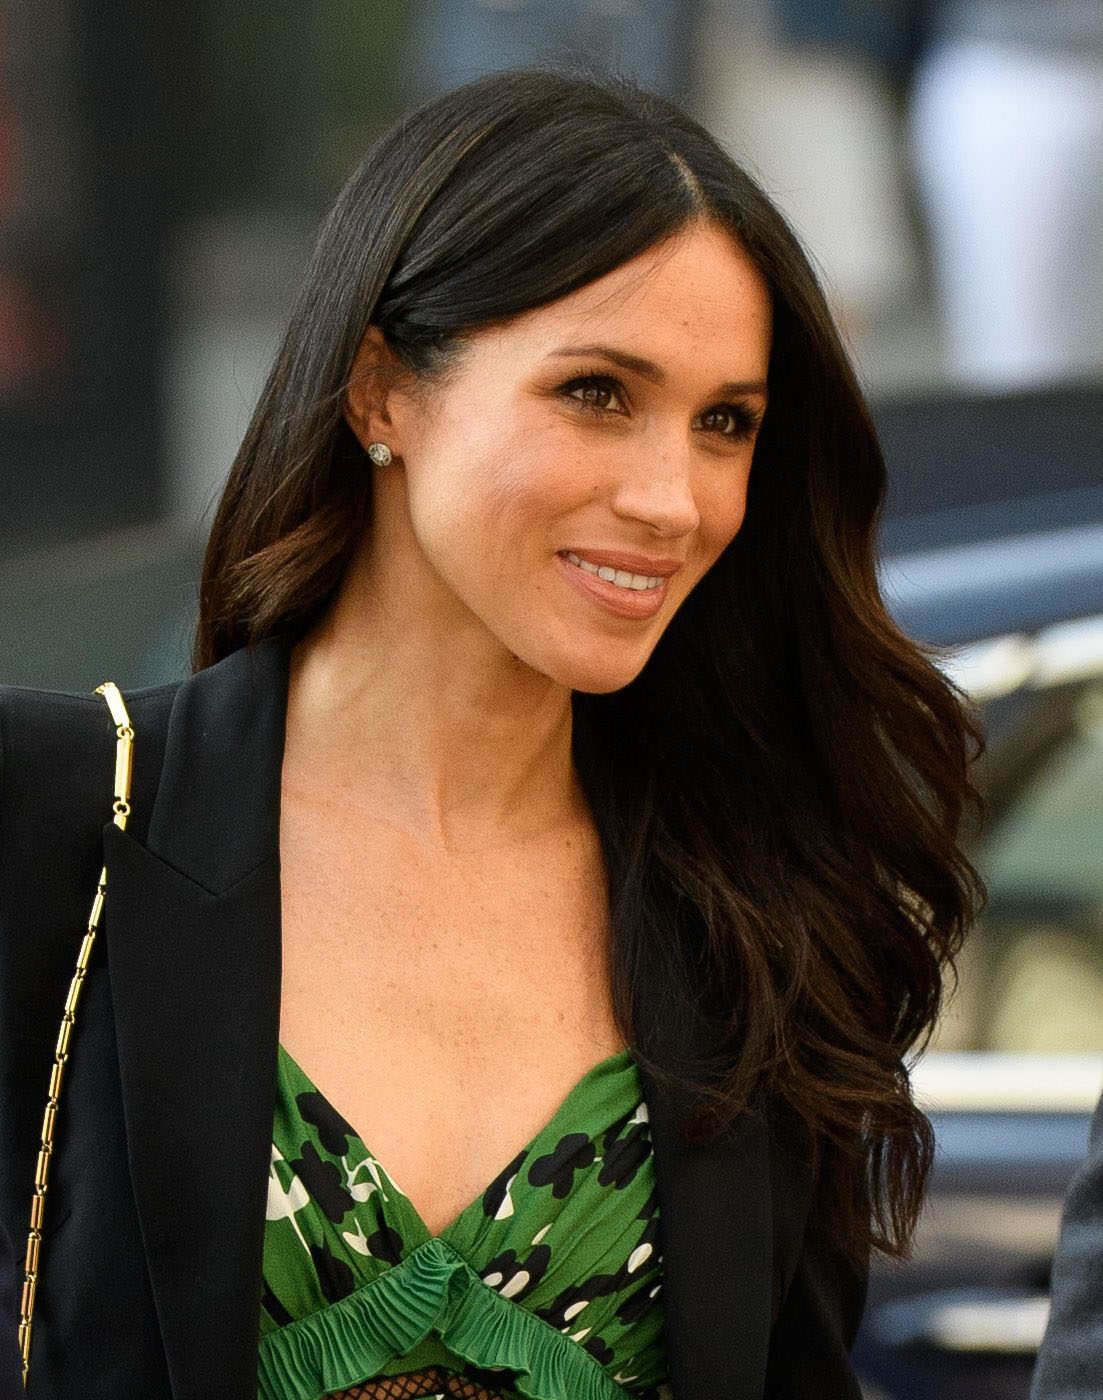 Meghan Markle Invictus Games Reception, Australian High Commission, Australia House, London, UK - 21 Apr 2018 Prince Harry, Patron of the Invictus Games Foundation, and Ms. Meghan Markle attend a reception hosted by The Hon Malcolm Turnbull, The Prime Minister of Australia, and Ms. Lucy Turnbull, celebrating the forthcoming Invictus Games Sydney 2018.